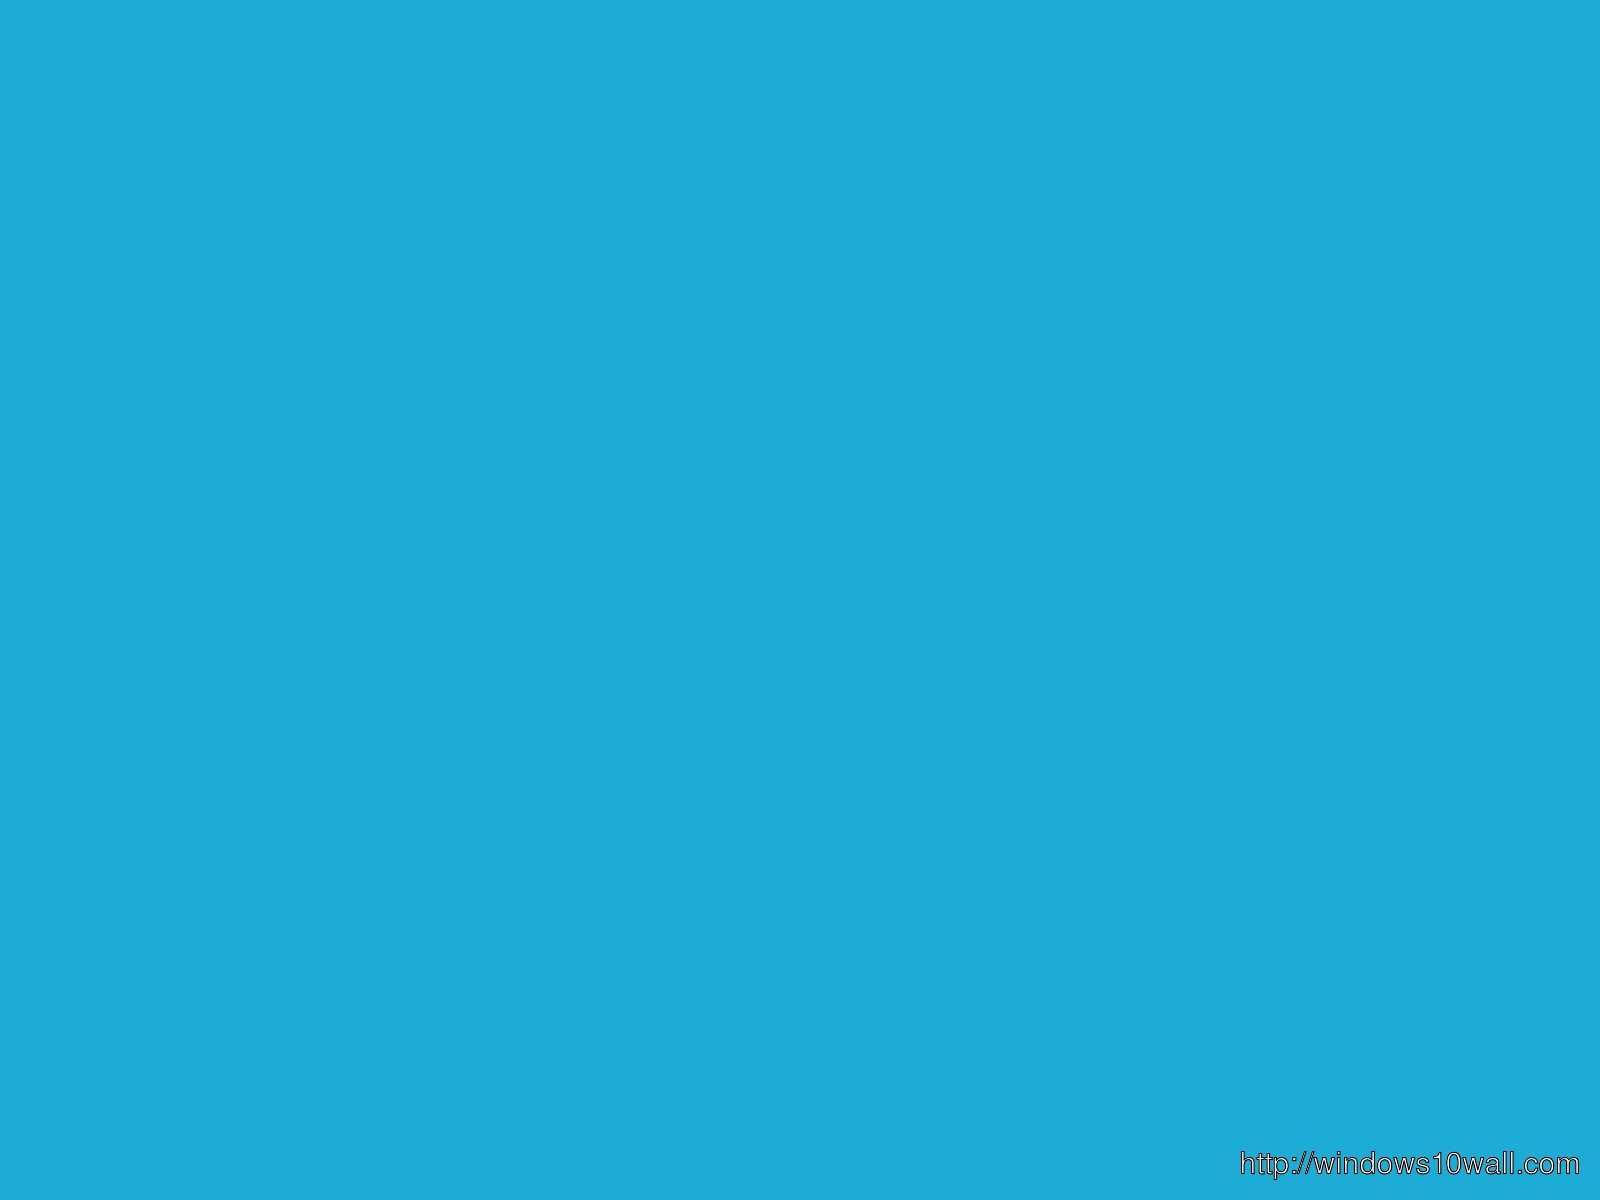 Color Background Wallpaper New Wallpaper Bright Cerulean Solid Color ...